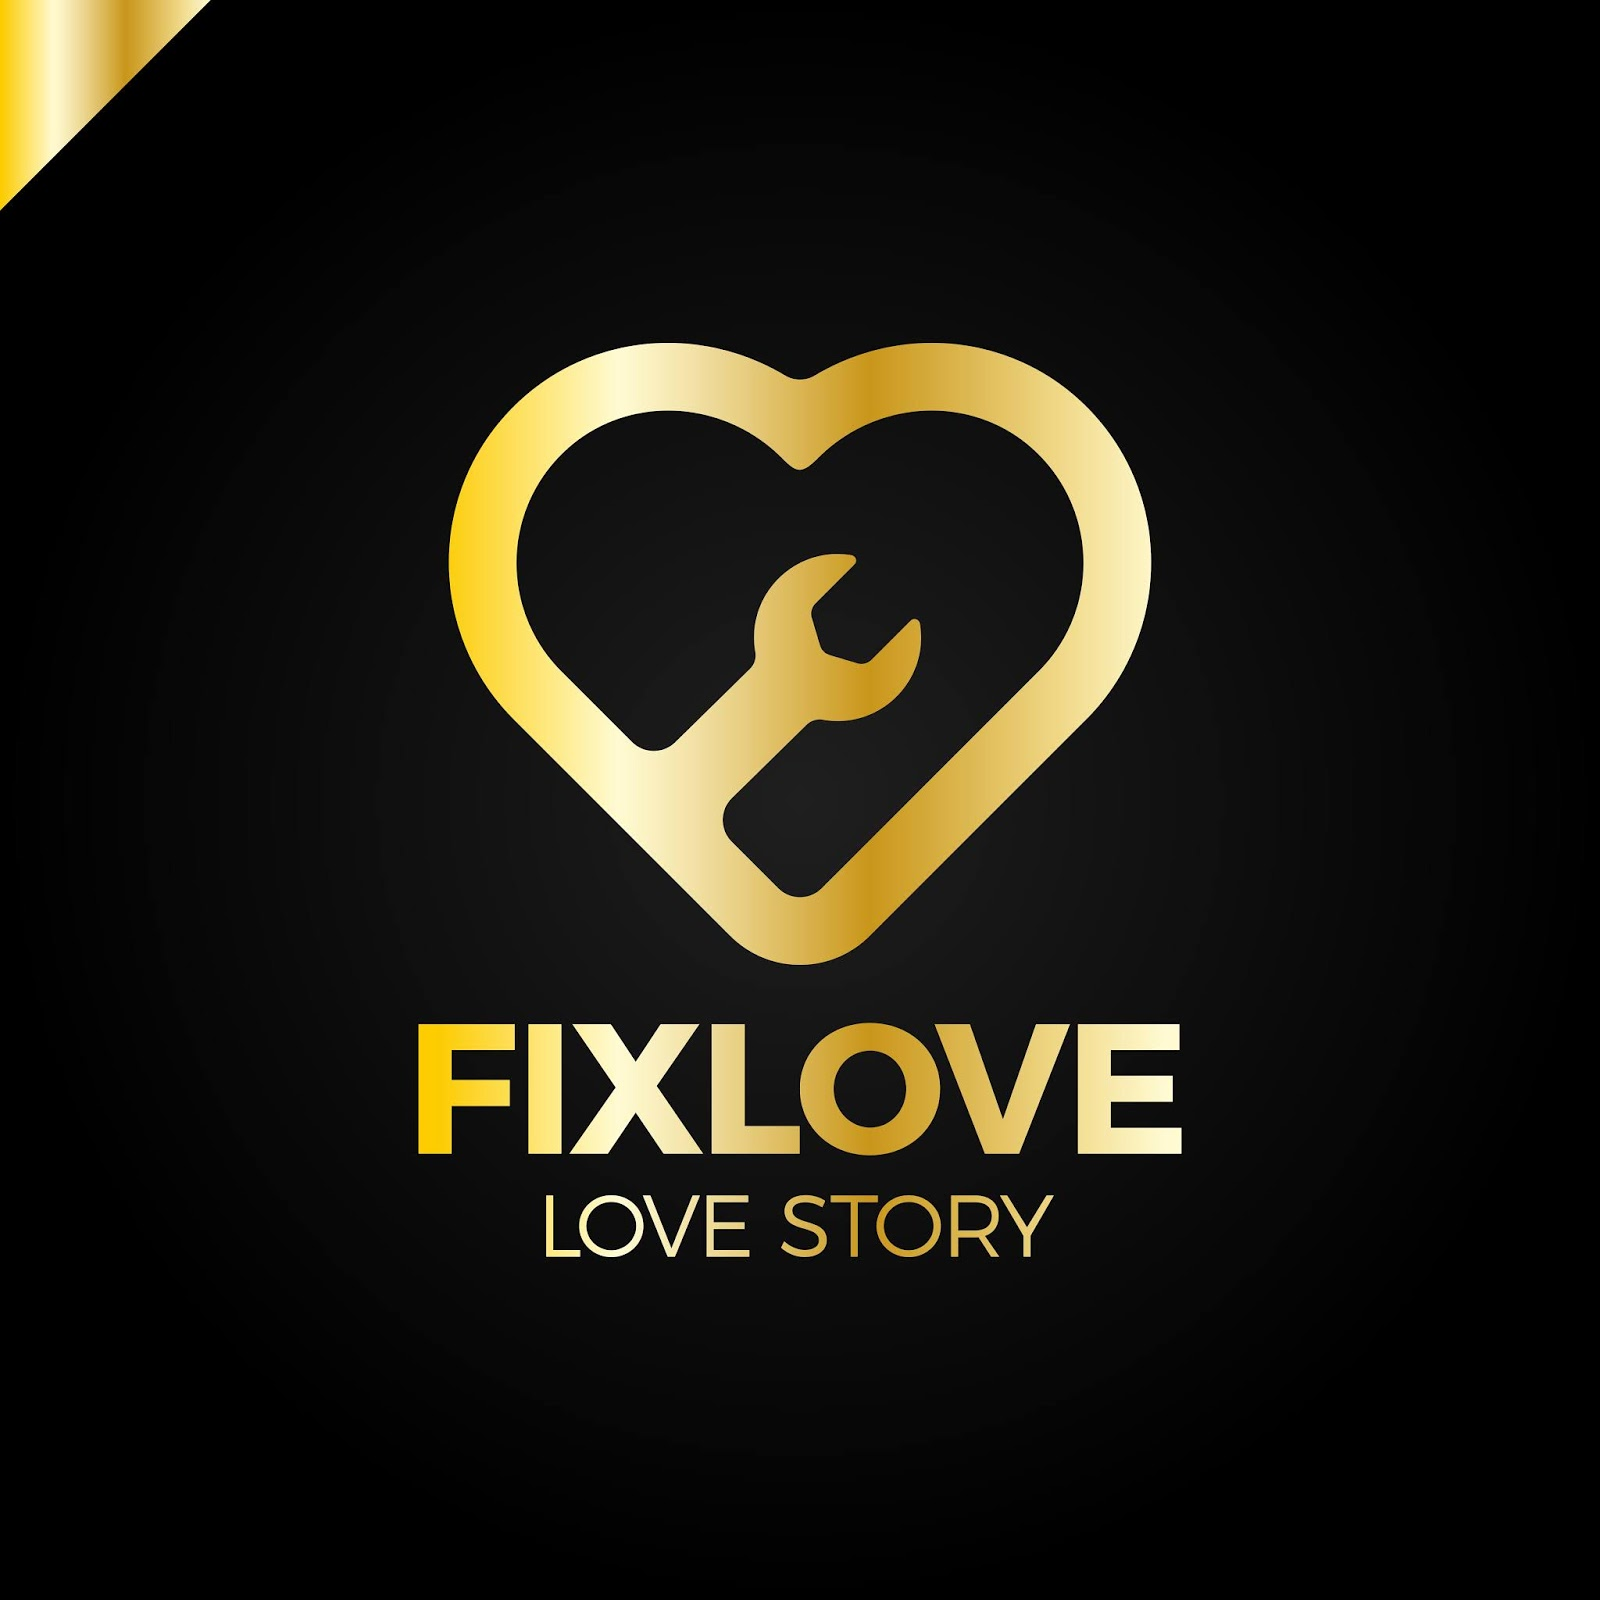 Repair Love Logo Design	 Free Download Vector CDR, AI, EPS and PNG Formats